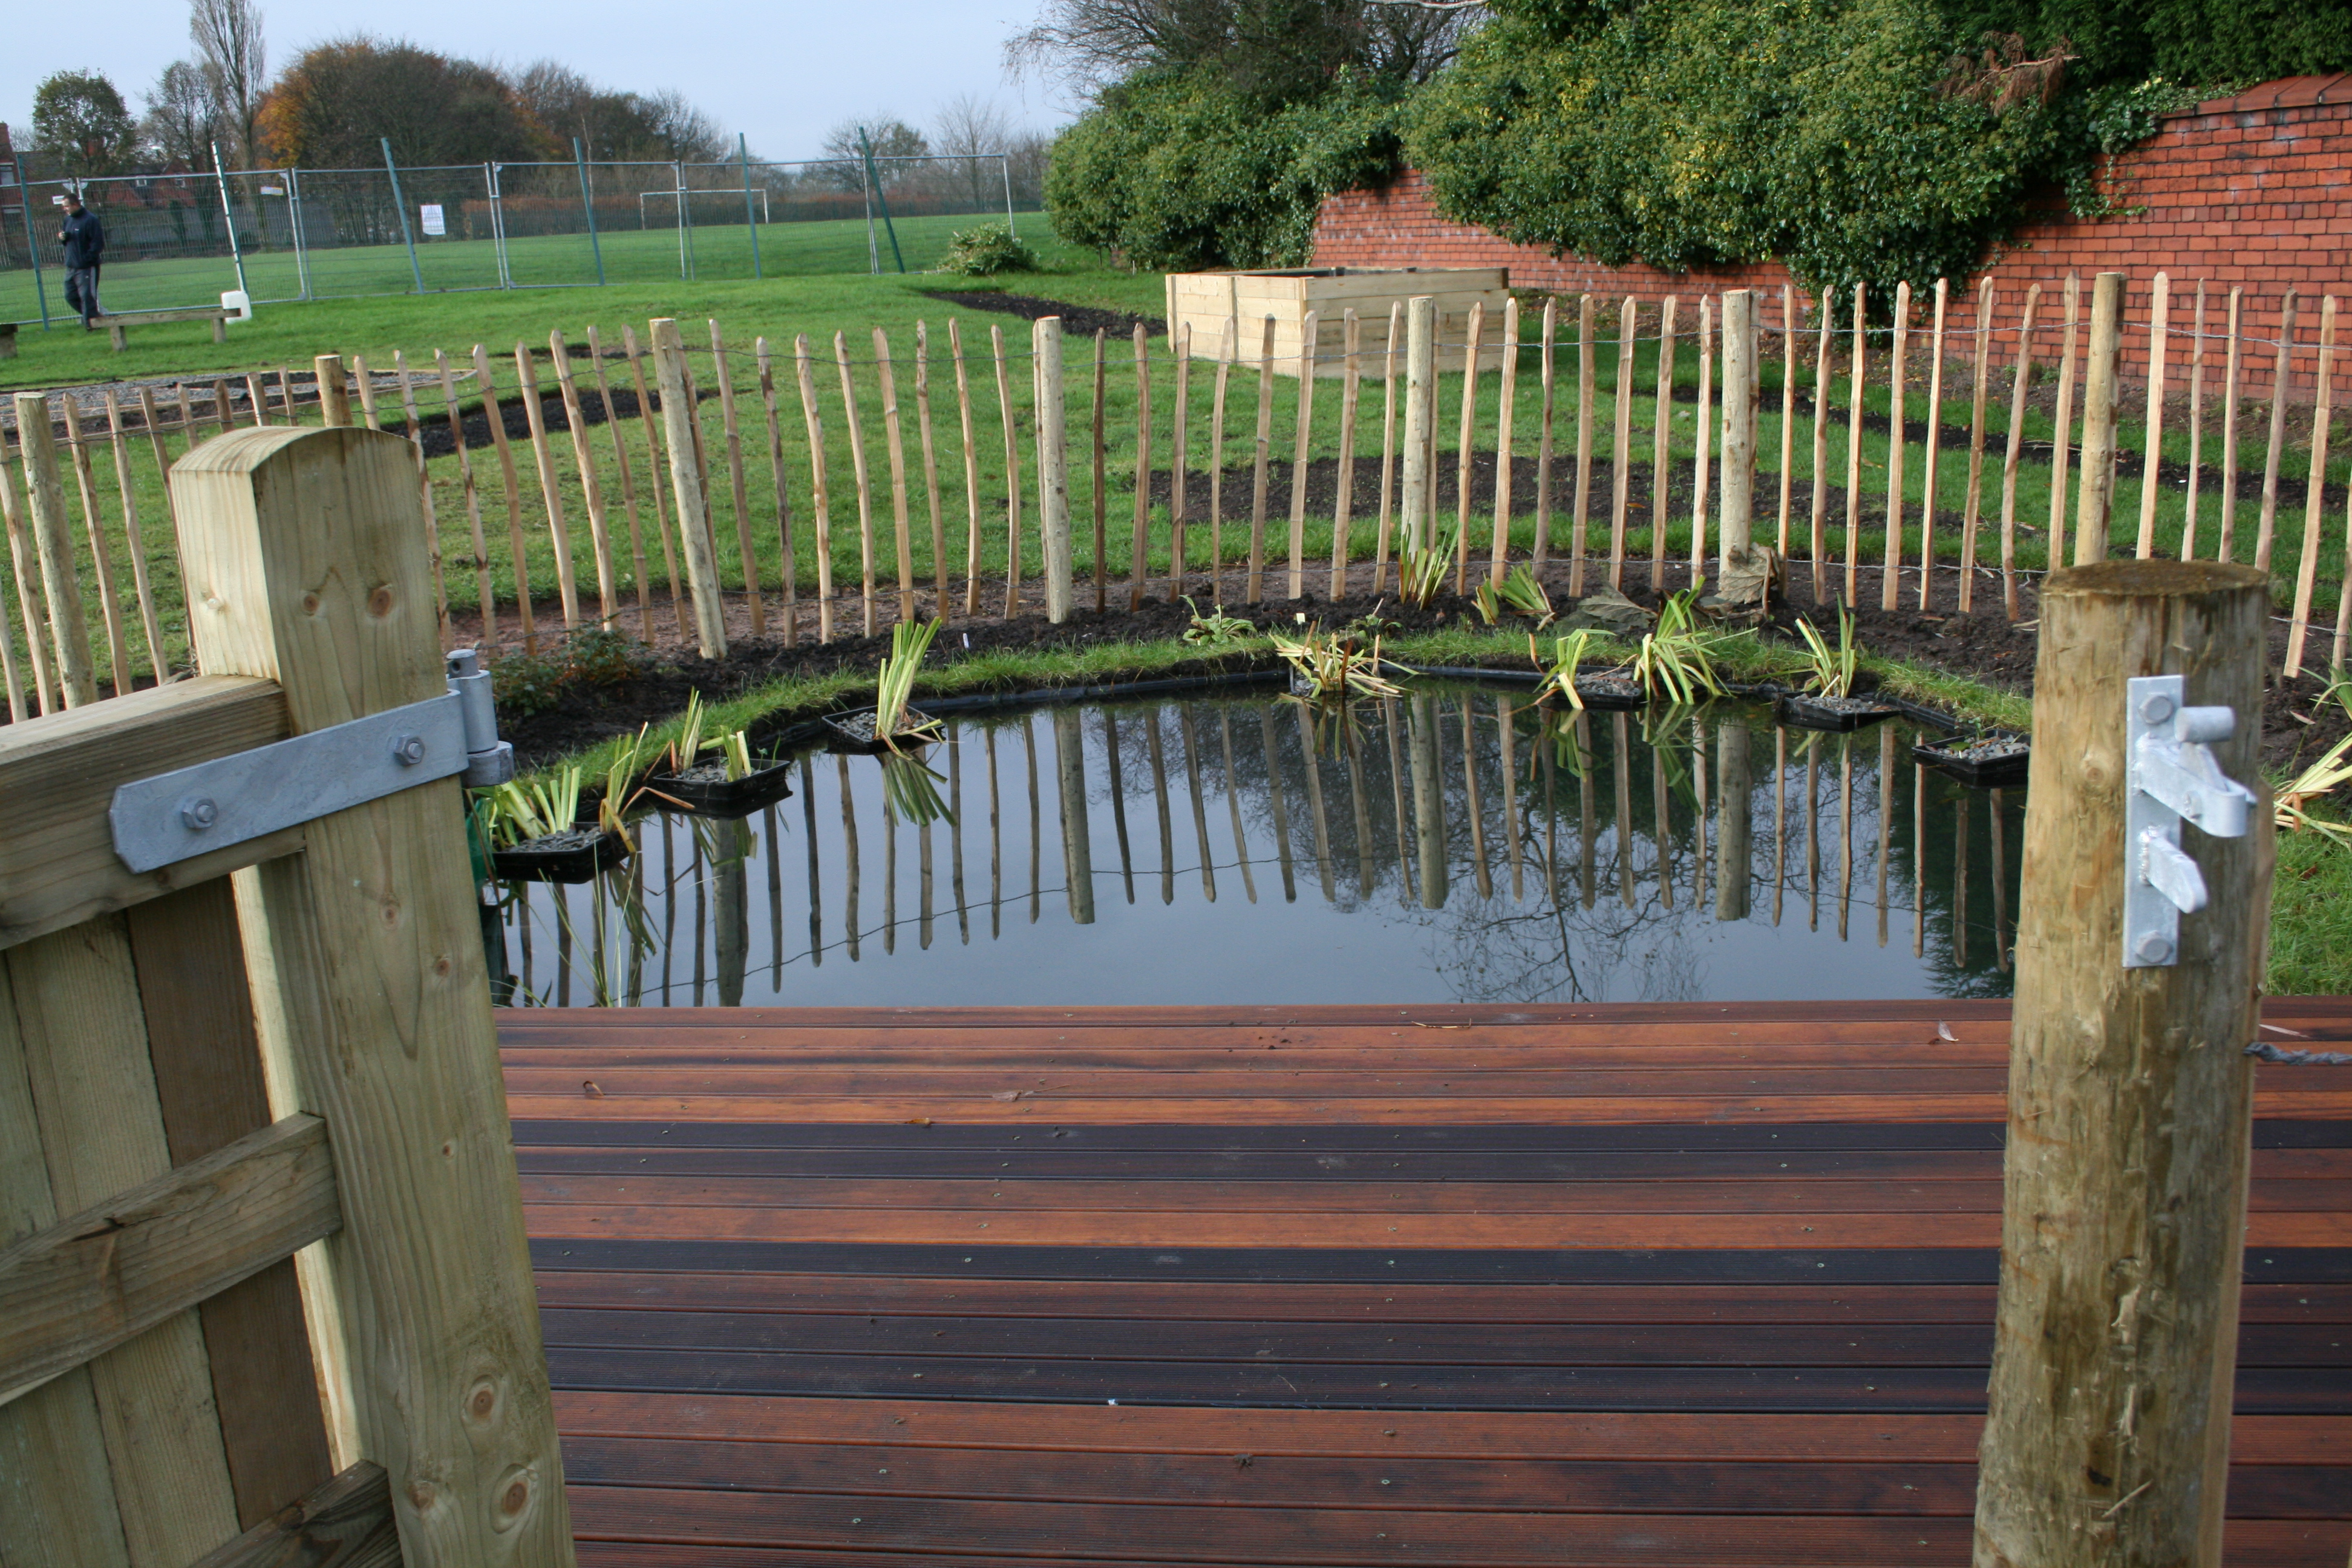 Wildlife Pool with hardwood boardwalk and rustic fencing at Mathew Moss High School Eco-Garden (Rochdale)